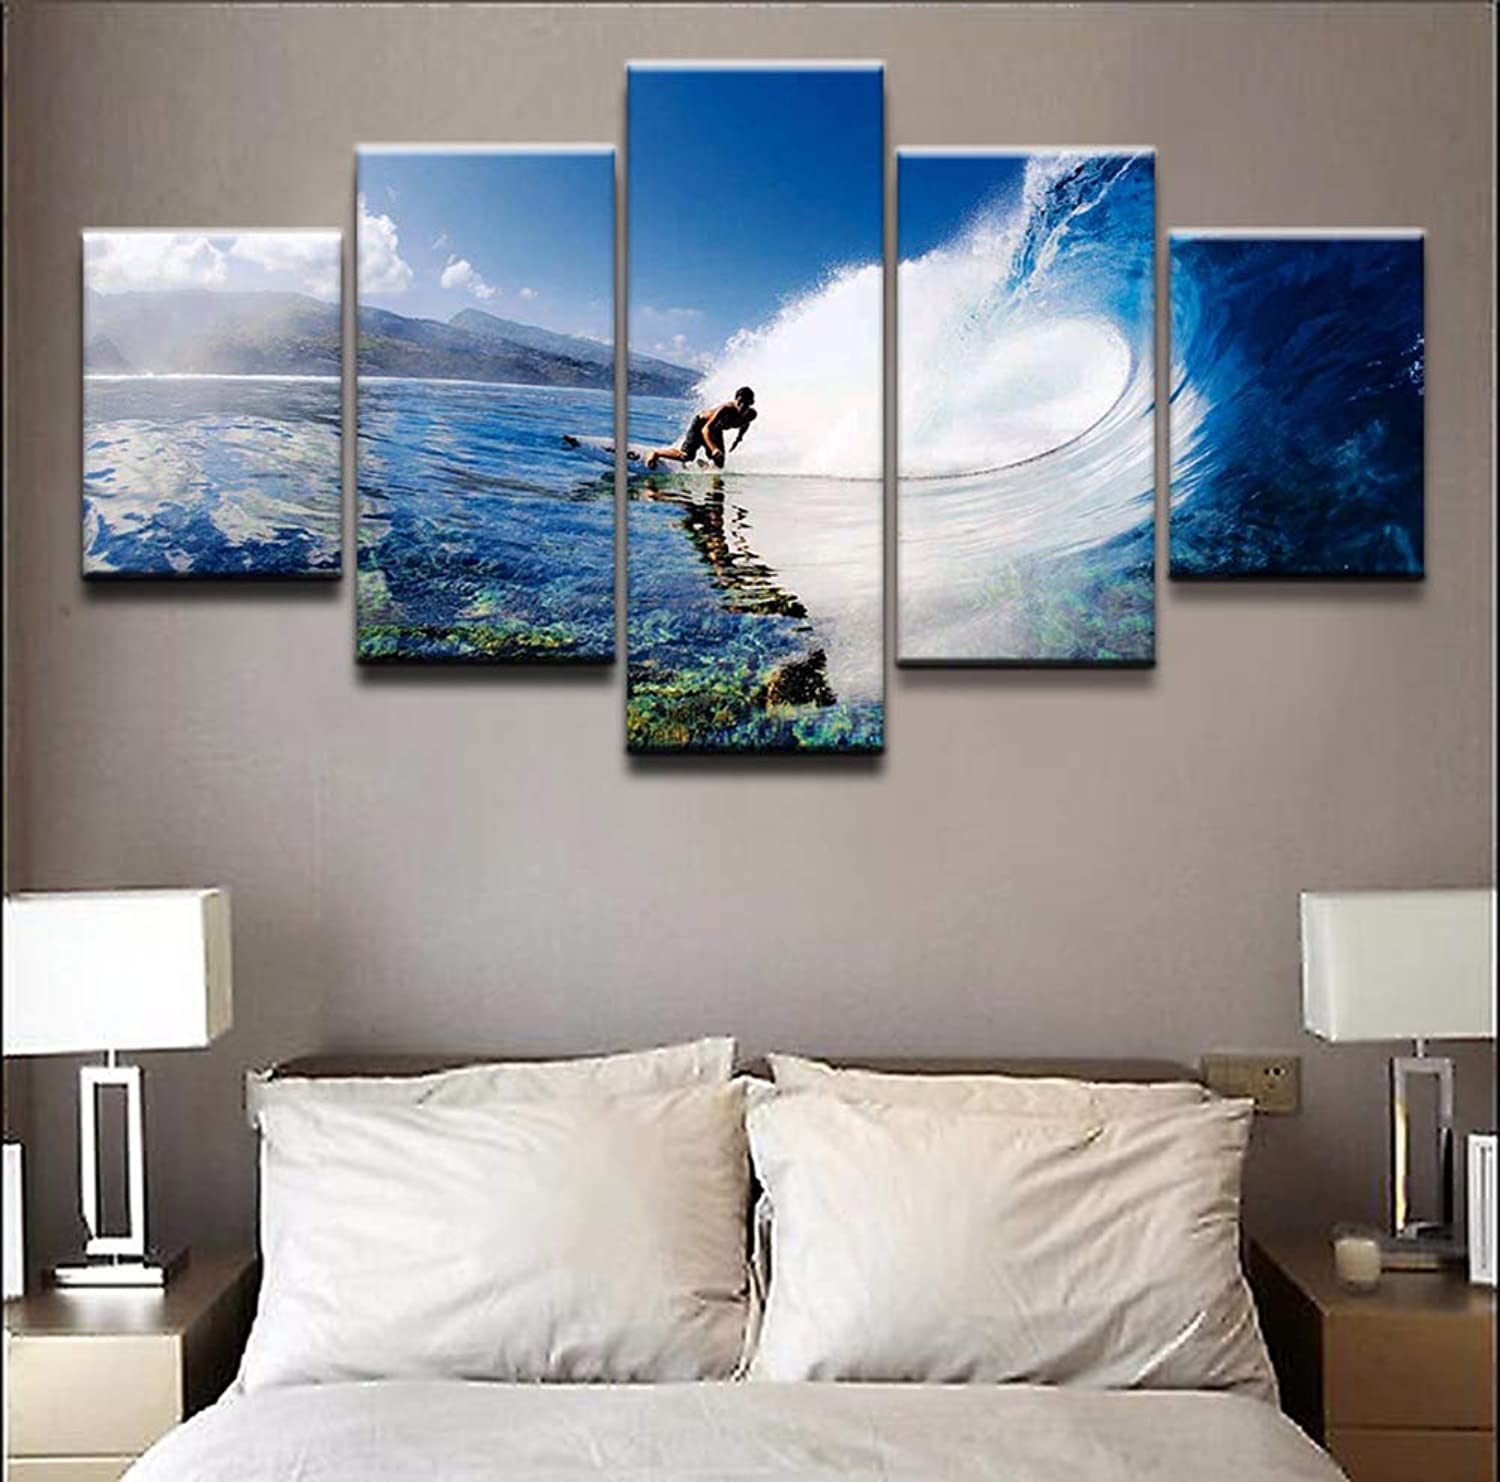 Modular Wall Art Canvas Poster HD Print 5 Pieces Sports Surfing Painting Abstract Pictures Home Decorative